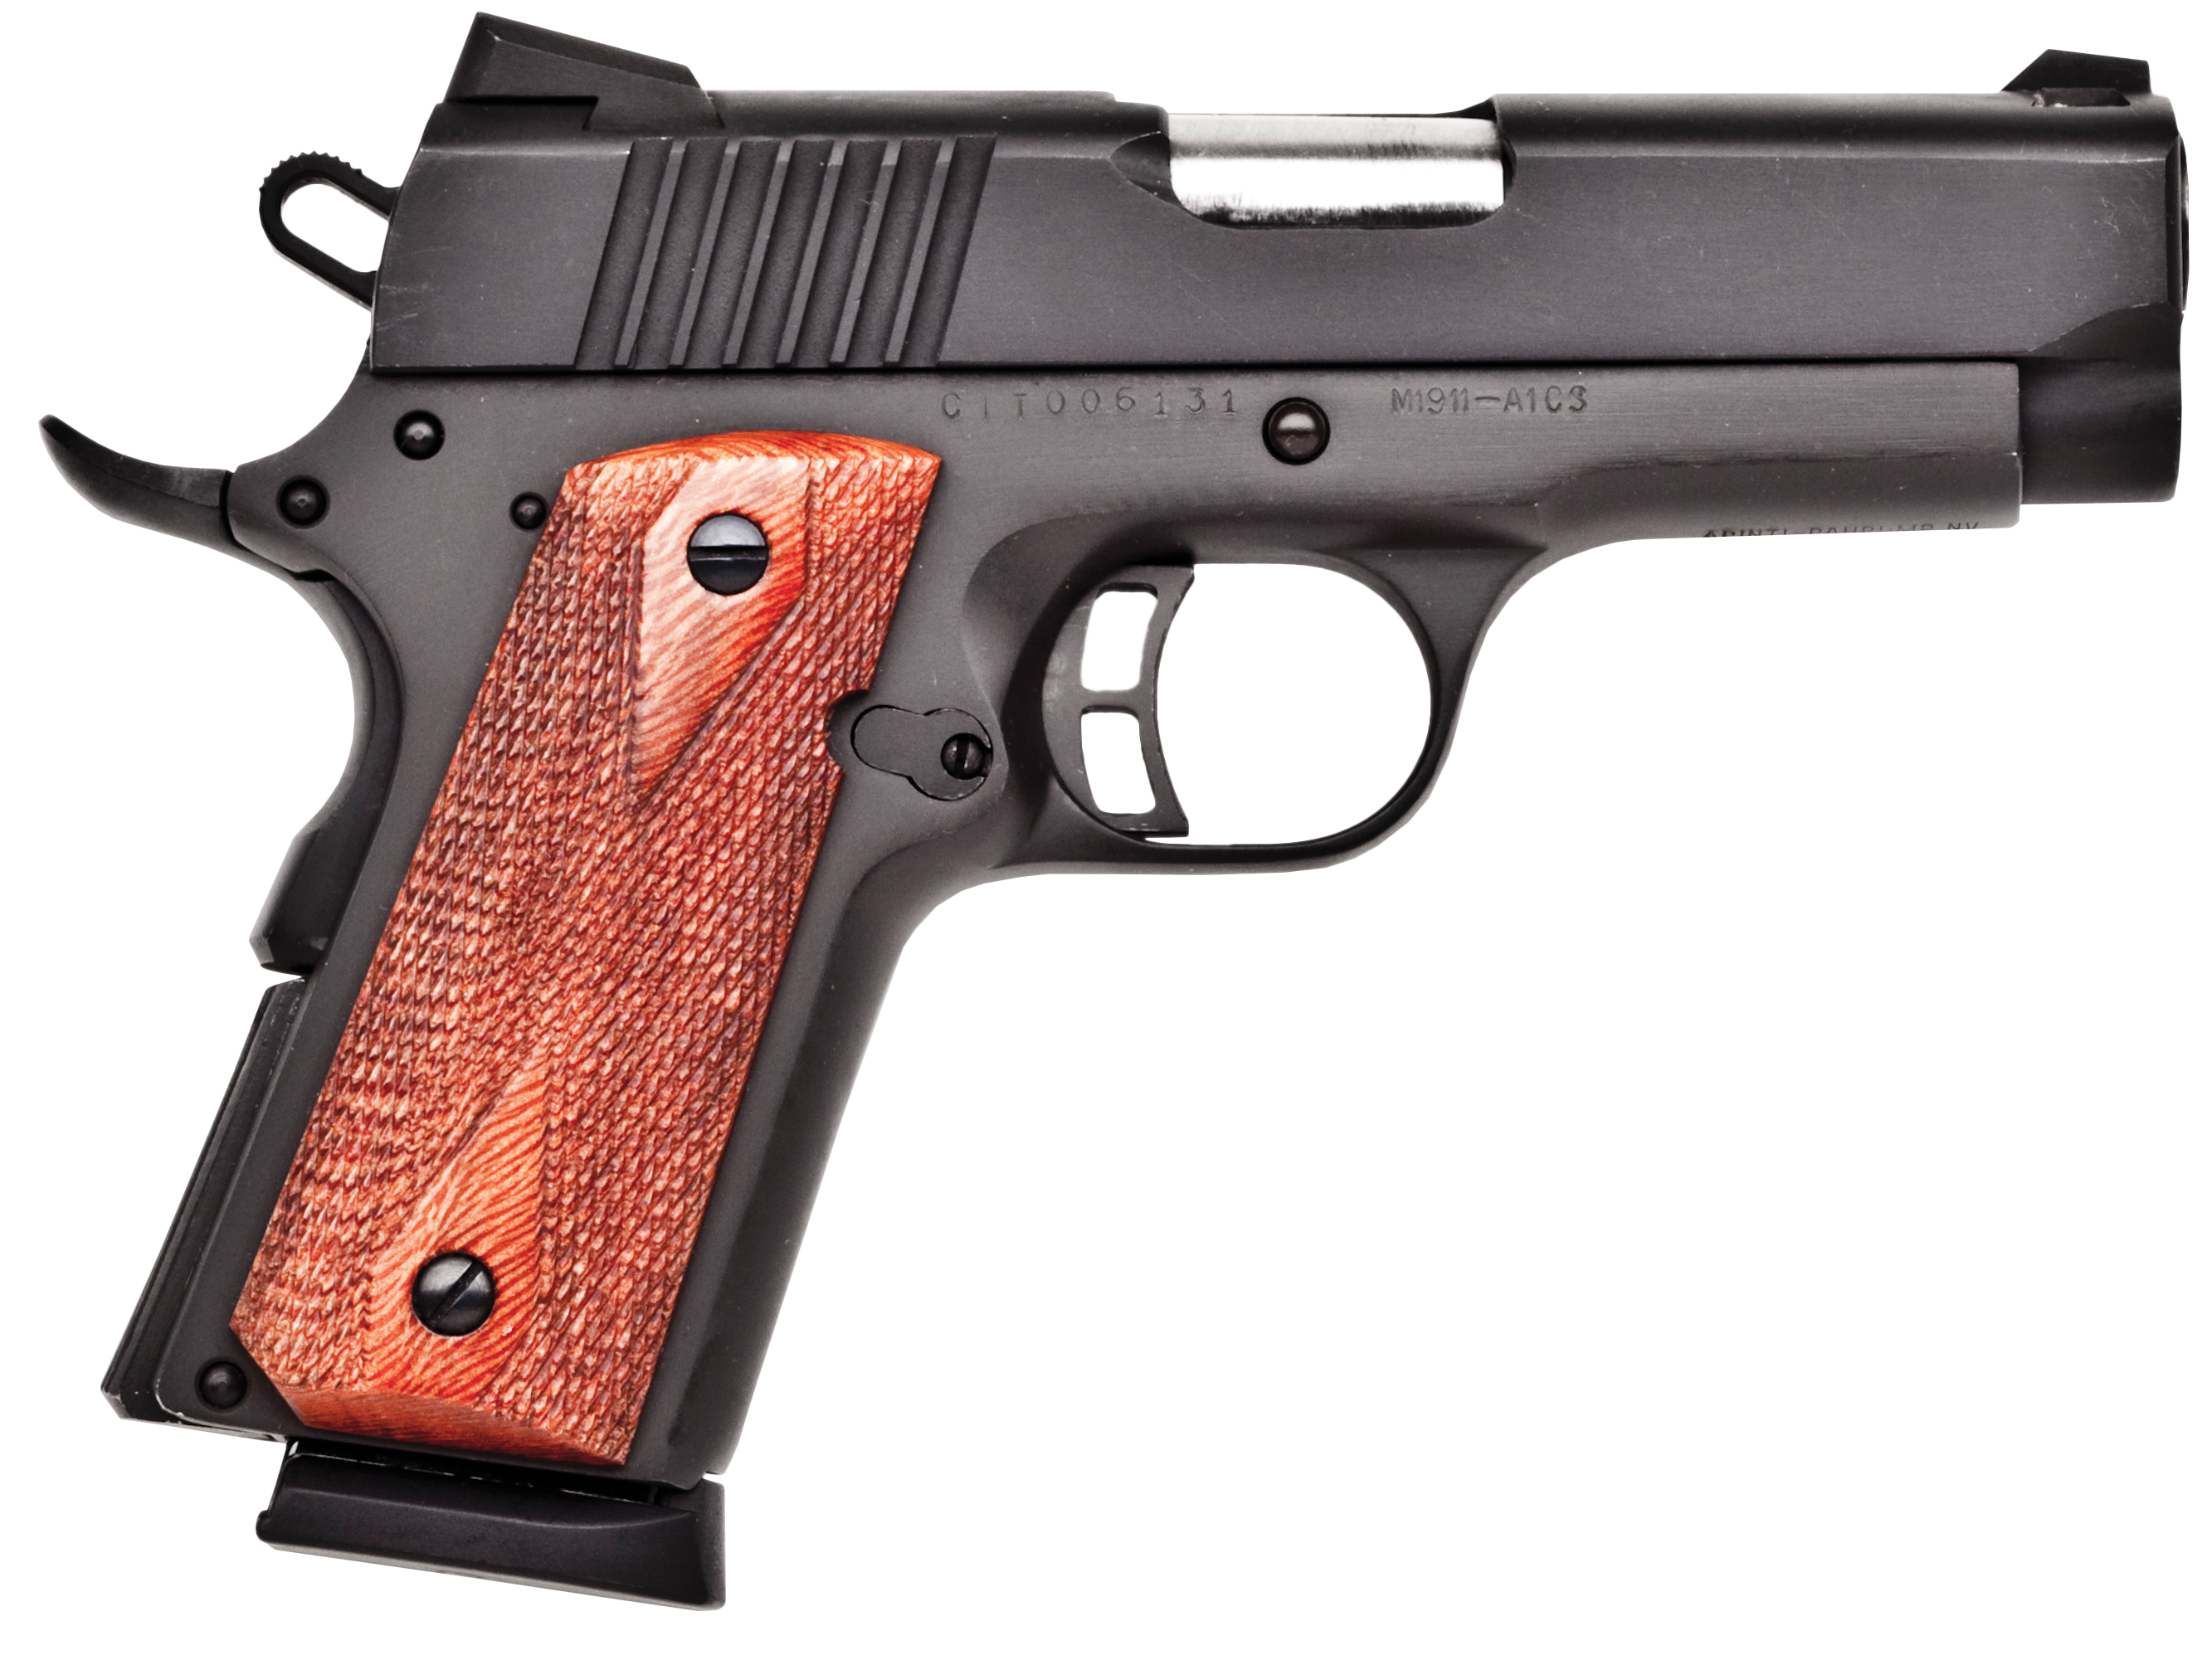 Citadel CIT9MMCSP M-1911 Compact Single 9mm 3.5